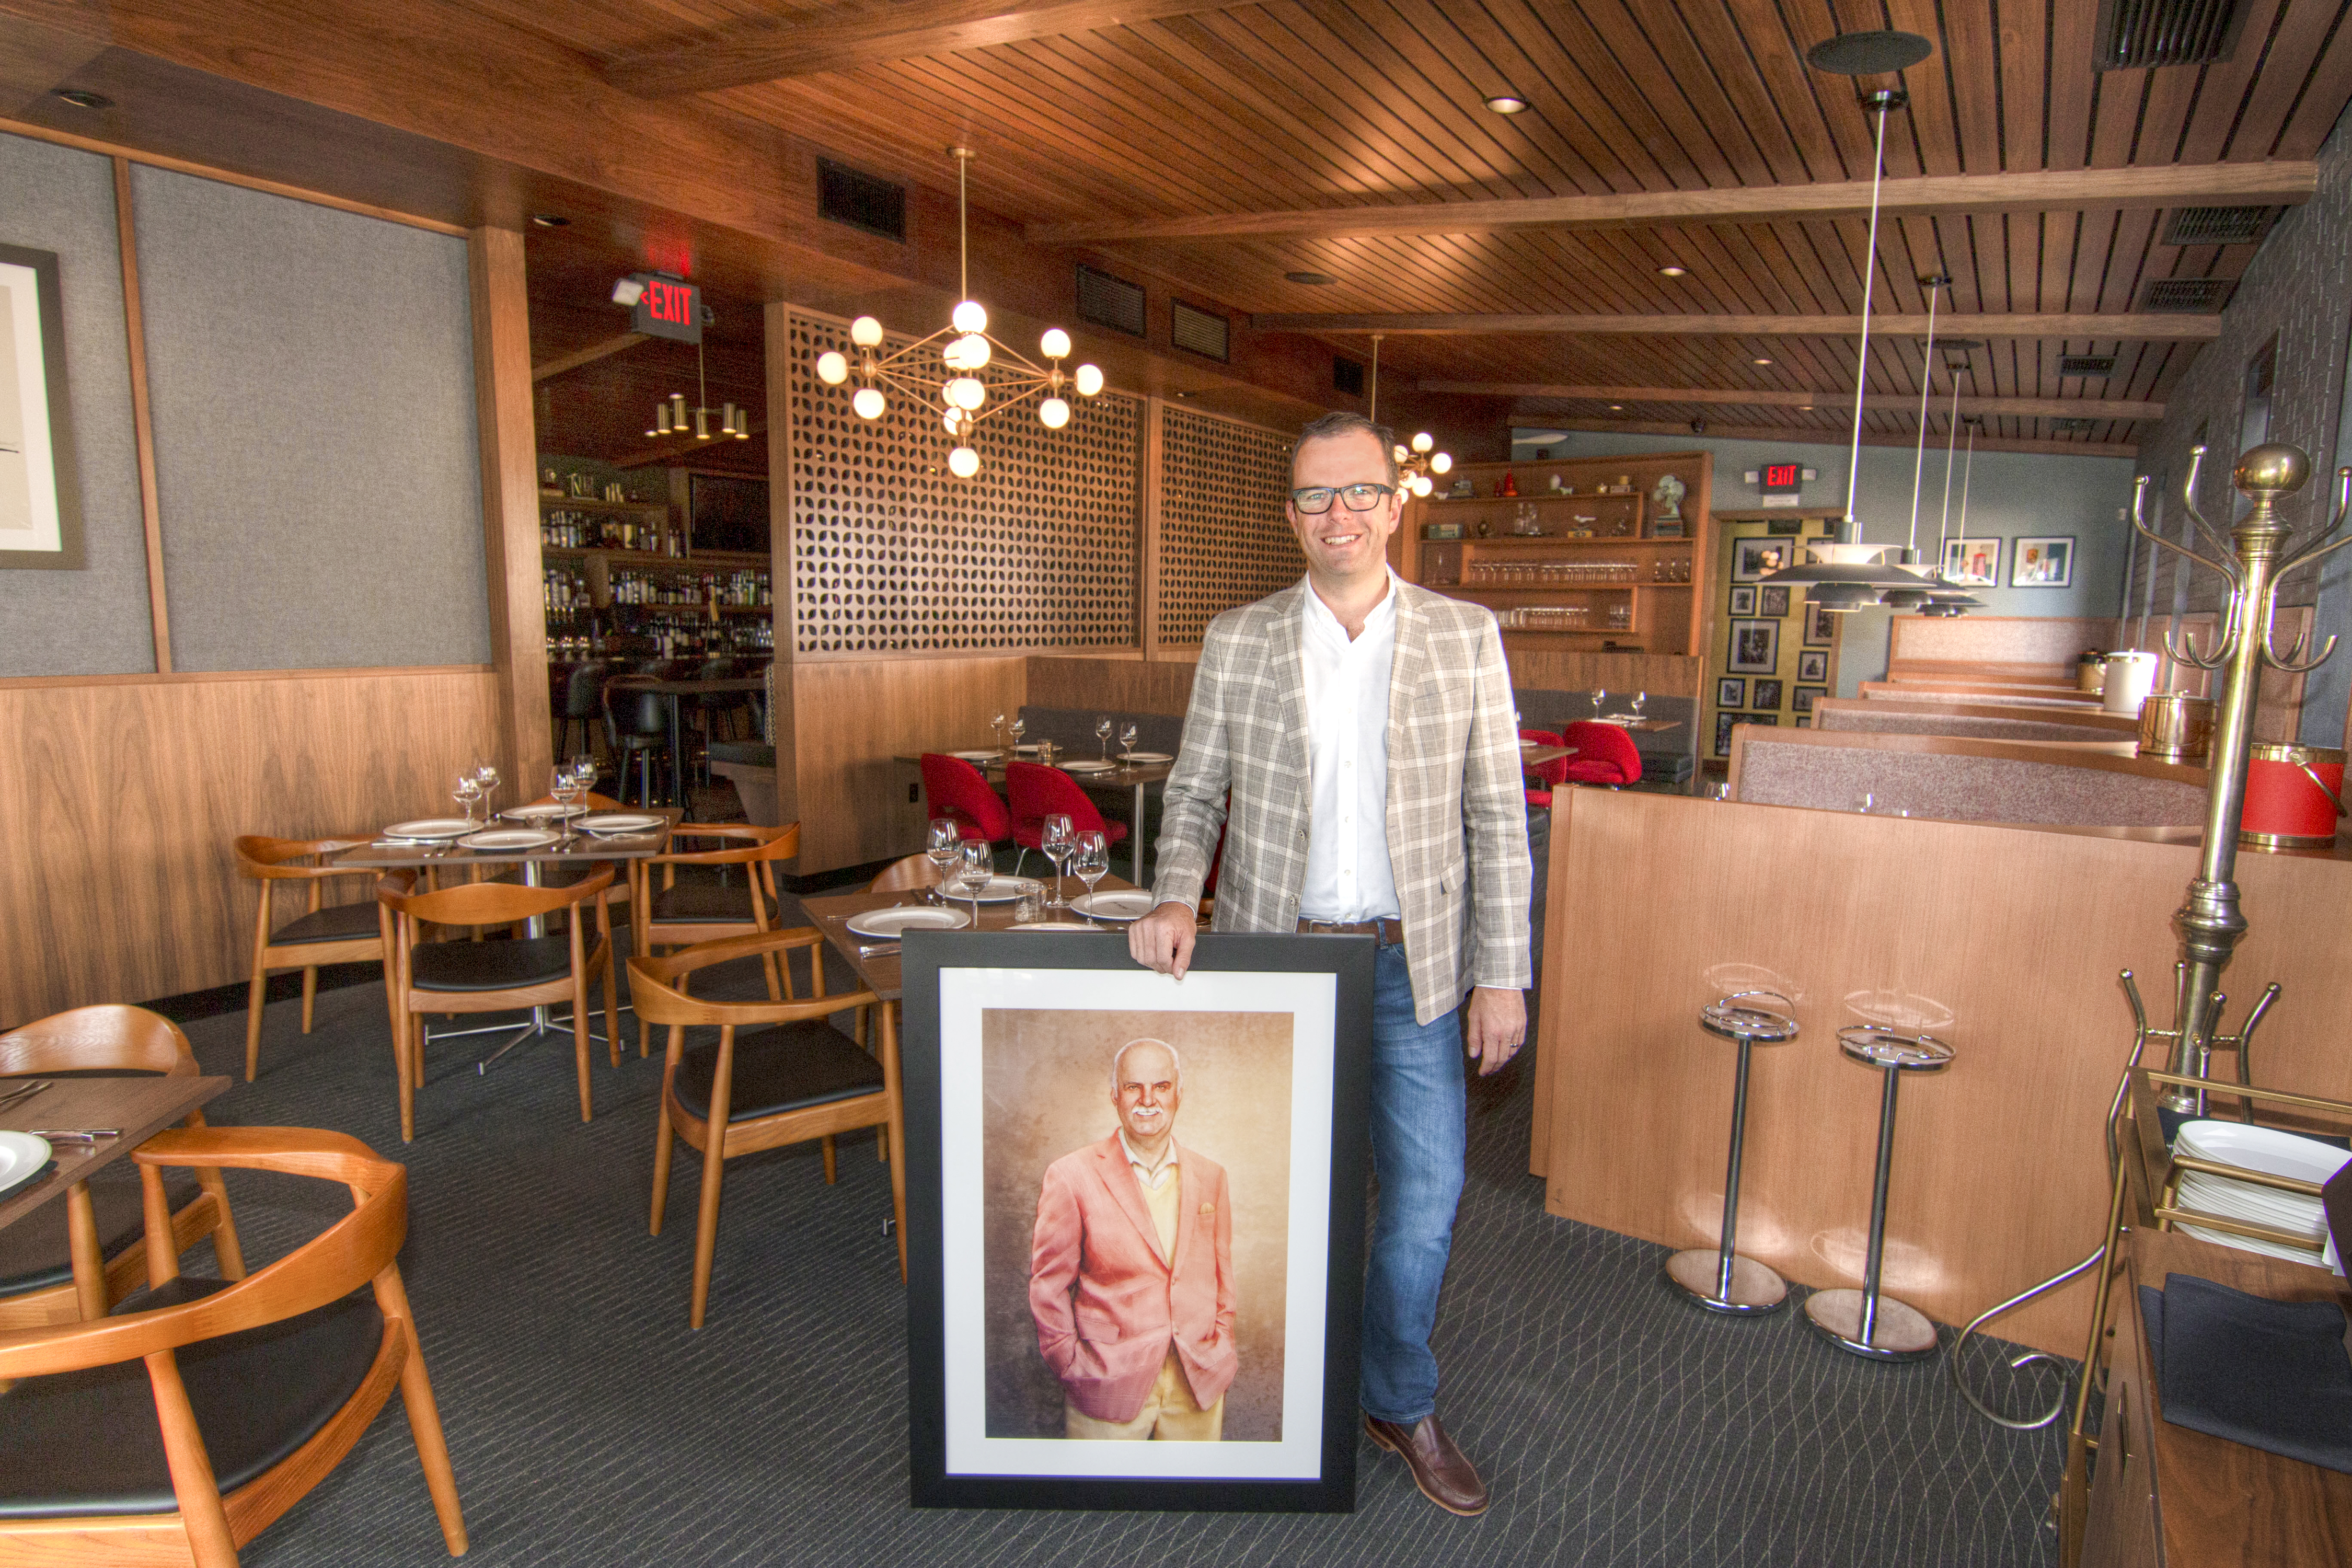 The Arthur J co-owner Mike Simms with a portrait of his grandfather Arthur J. Simms. Photo by Brad Jacobson